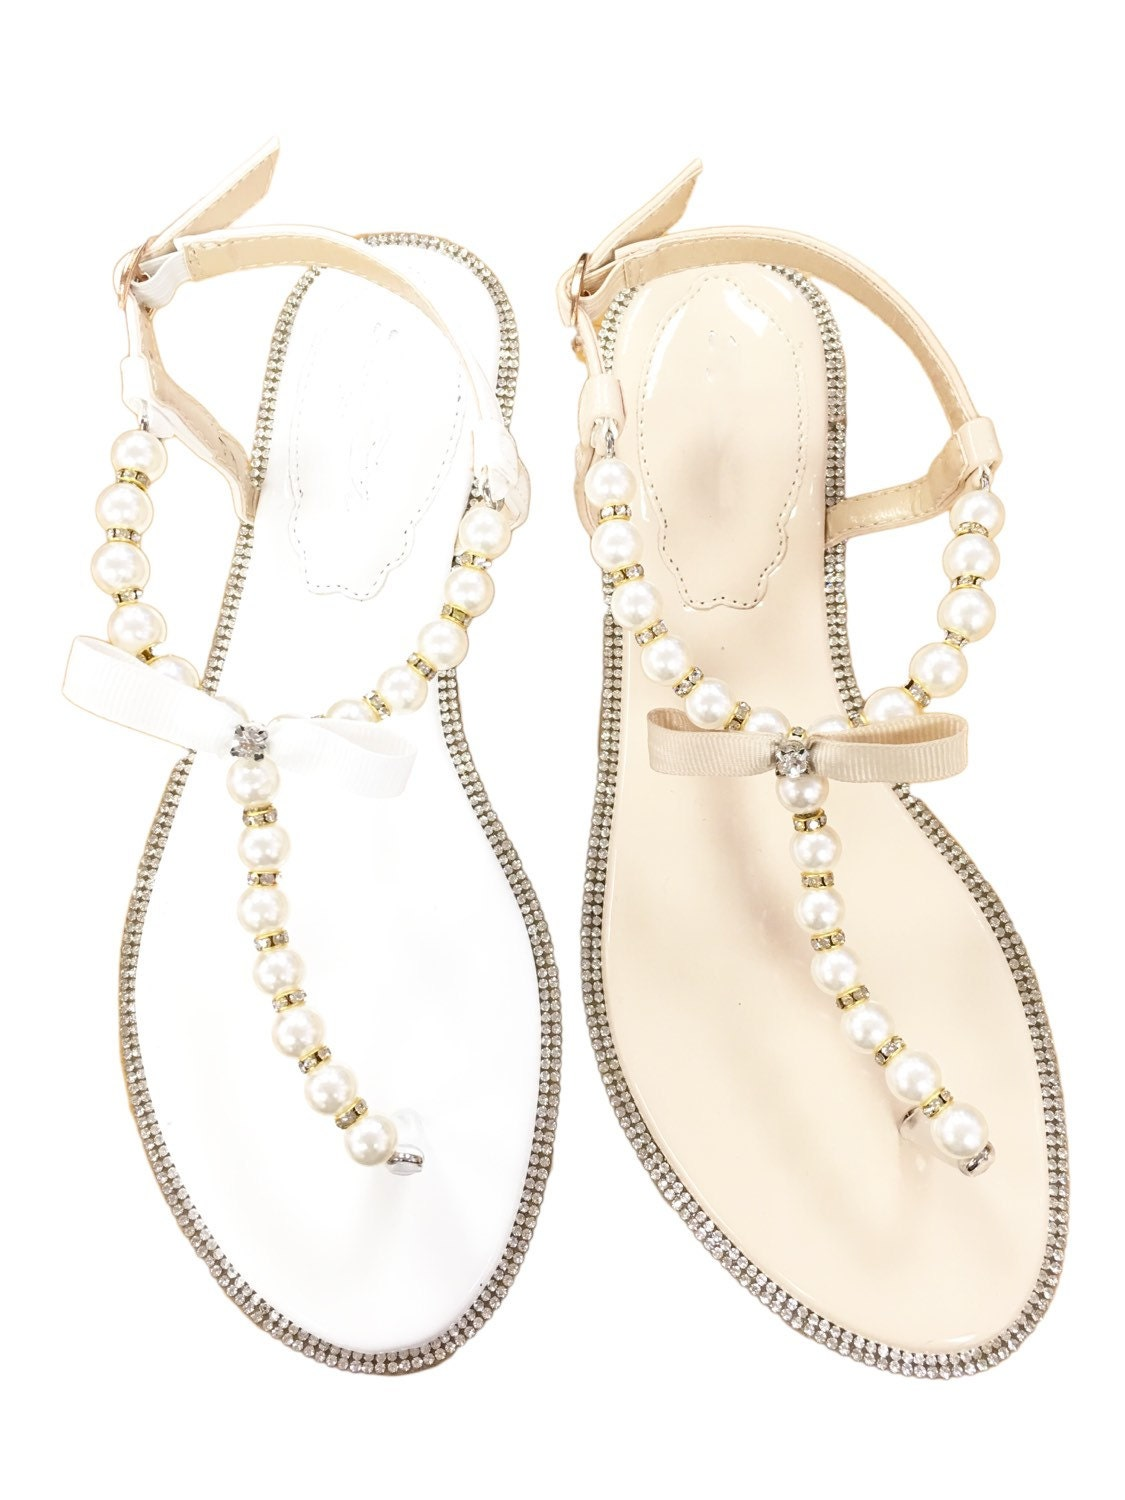 Womens sandals etsy - Women Pearls Flat Sandals White And Nude Patent Pearl Rhinestones Flat Sandal Perfect